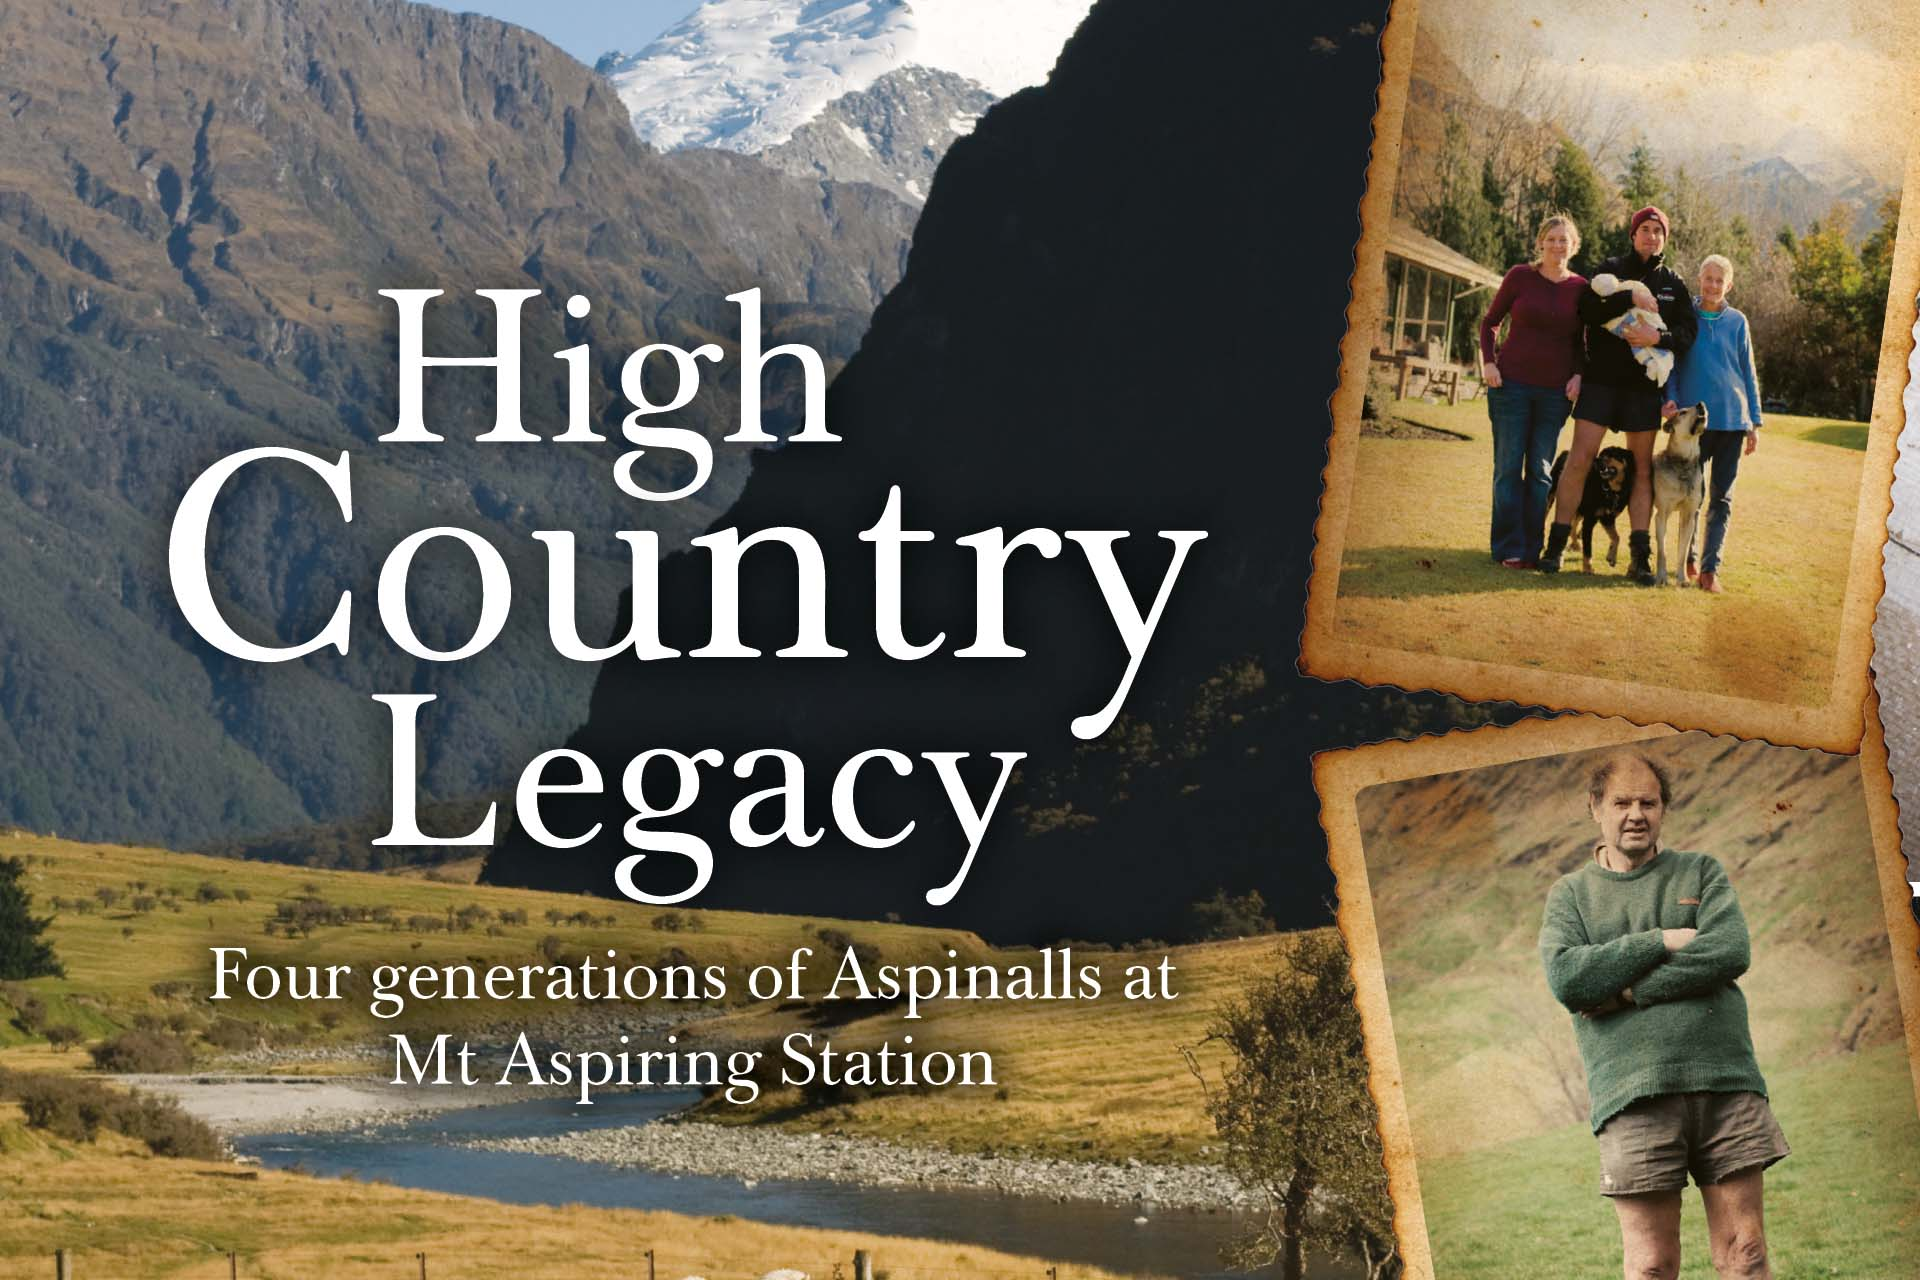 High Country Legacy